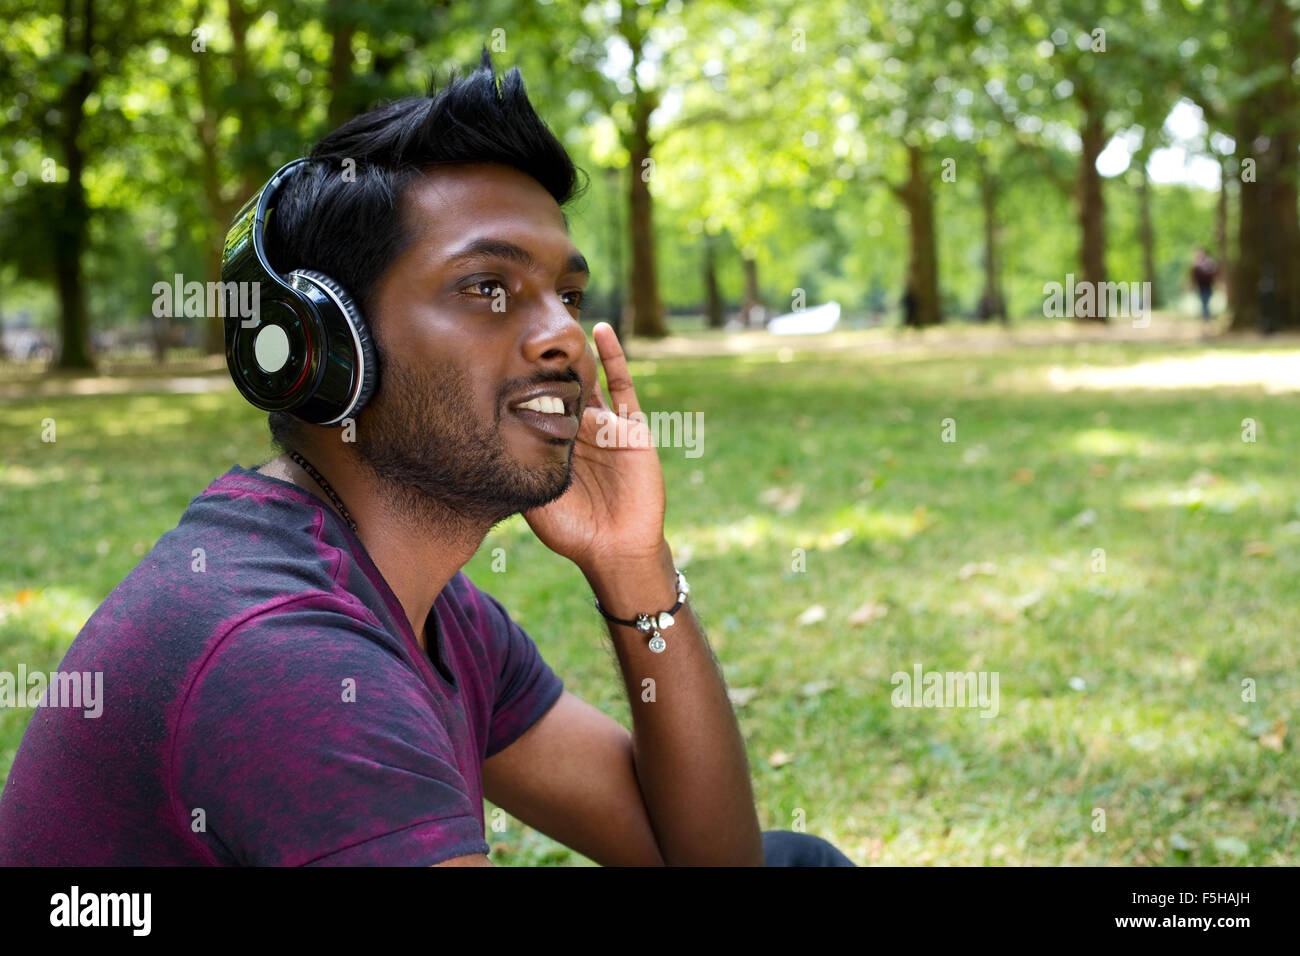 young man listening to music in the park - Stock Image